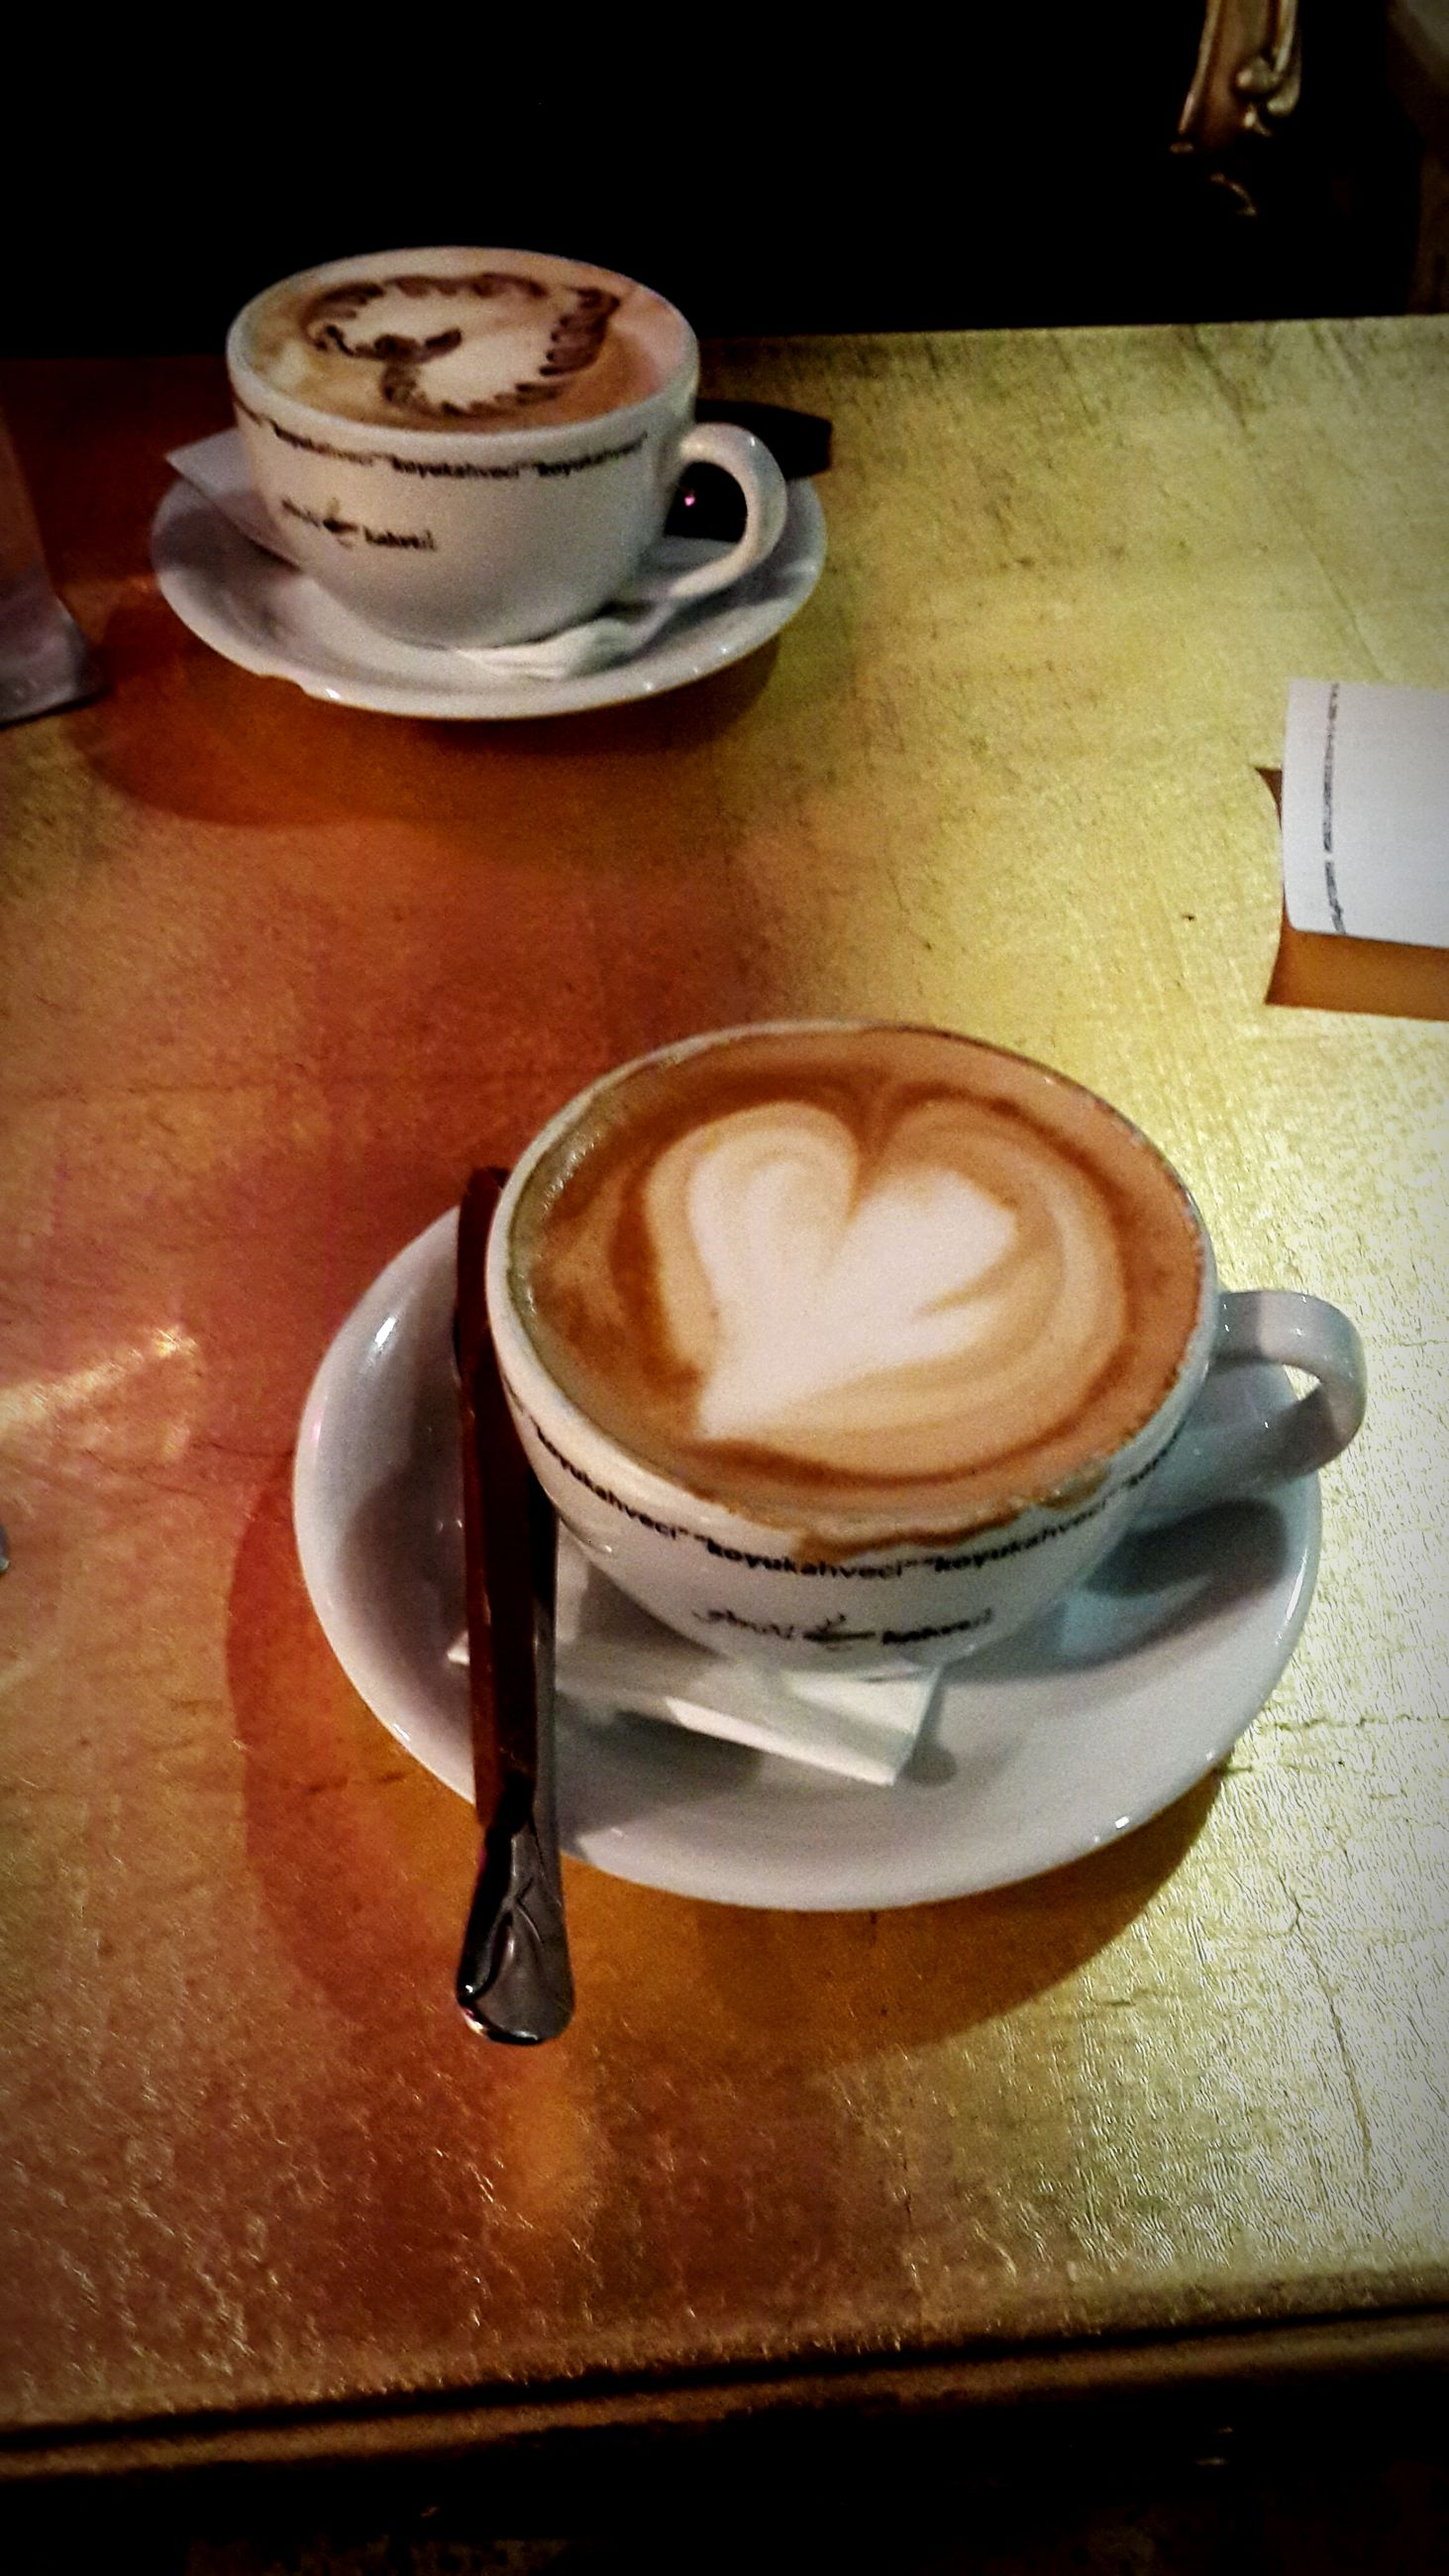 drink, food and drink, coffee cup, refreshment, coffee - drink, saucer, table, indoors, frothy drink, freshness, coffee, cappuccino, still life, cup, spoon, froth art, close-up, beverage, latte, high angle view